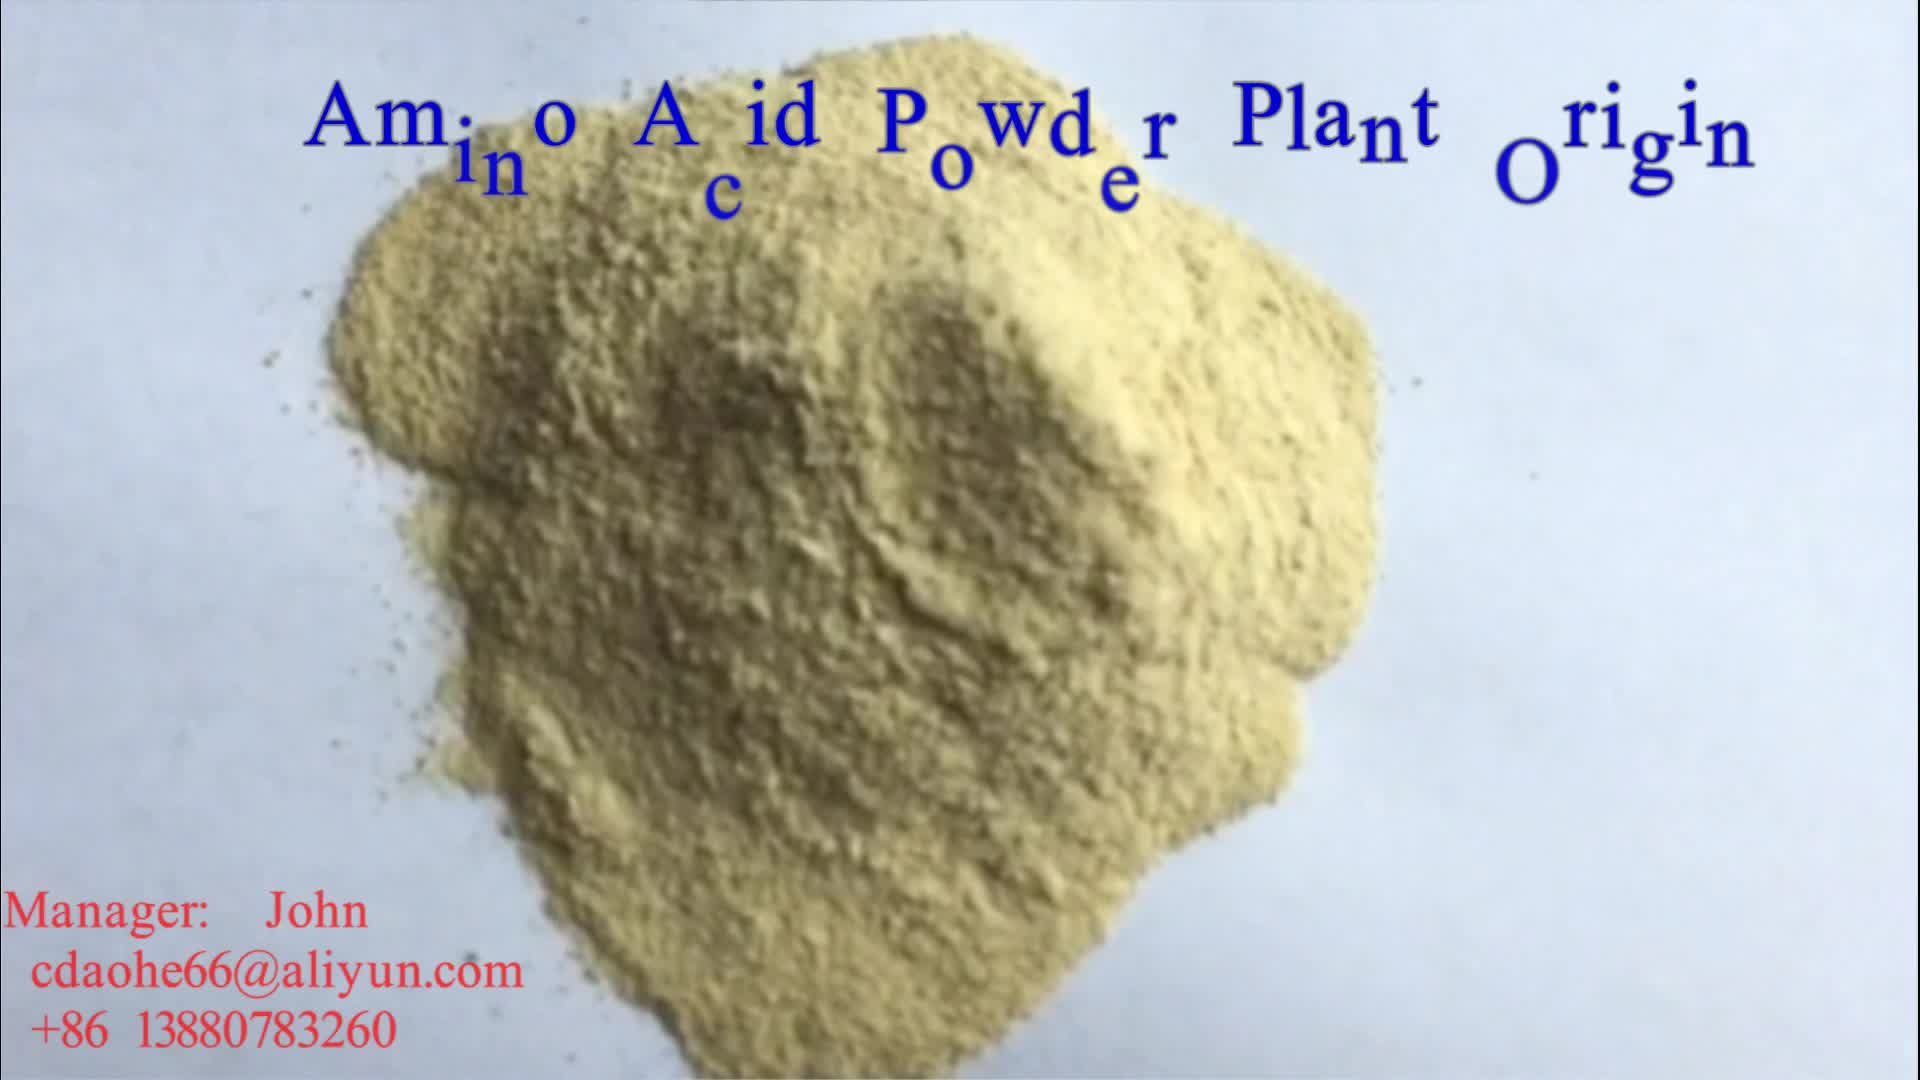 Banana Fertilizer Calcium Boron Molybdenum chelated AMINO ACID Liquid